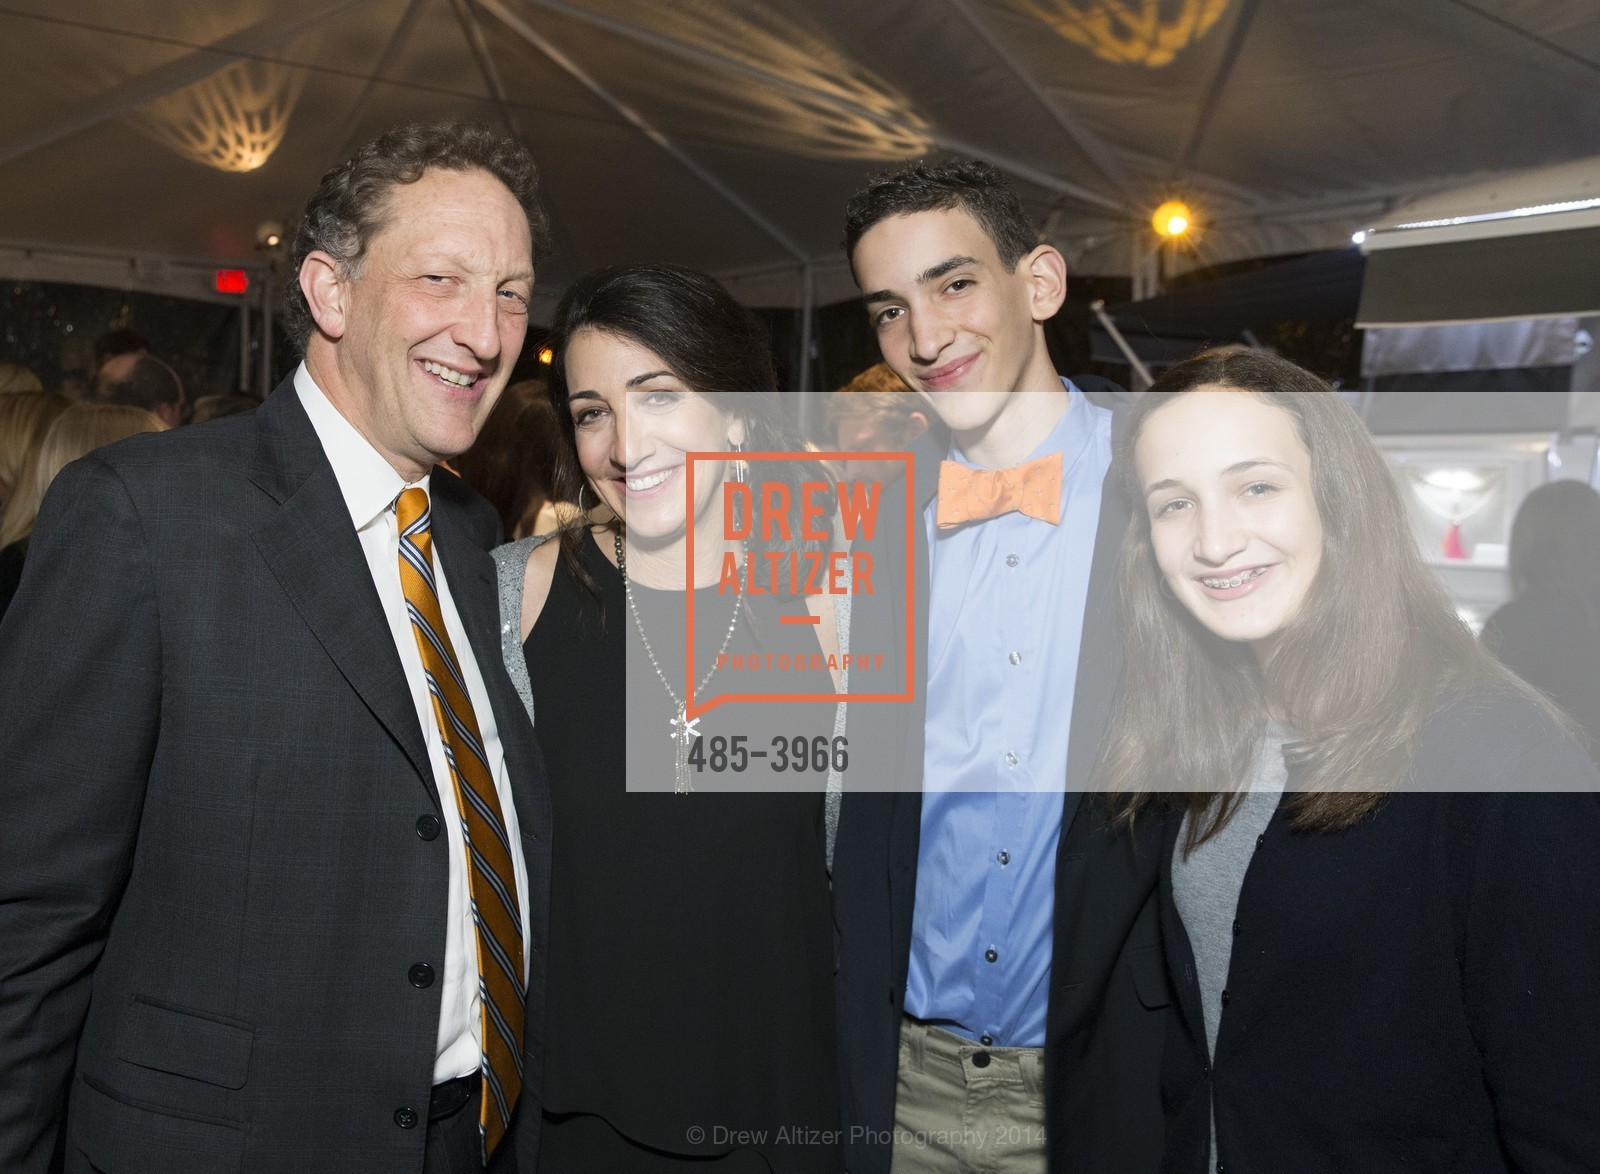 Larry Baer, Pam Baer, Zack Baer, Alana Baer, Photo #485-3966